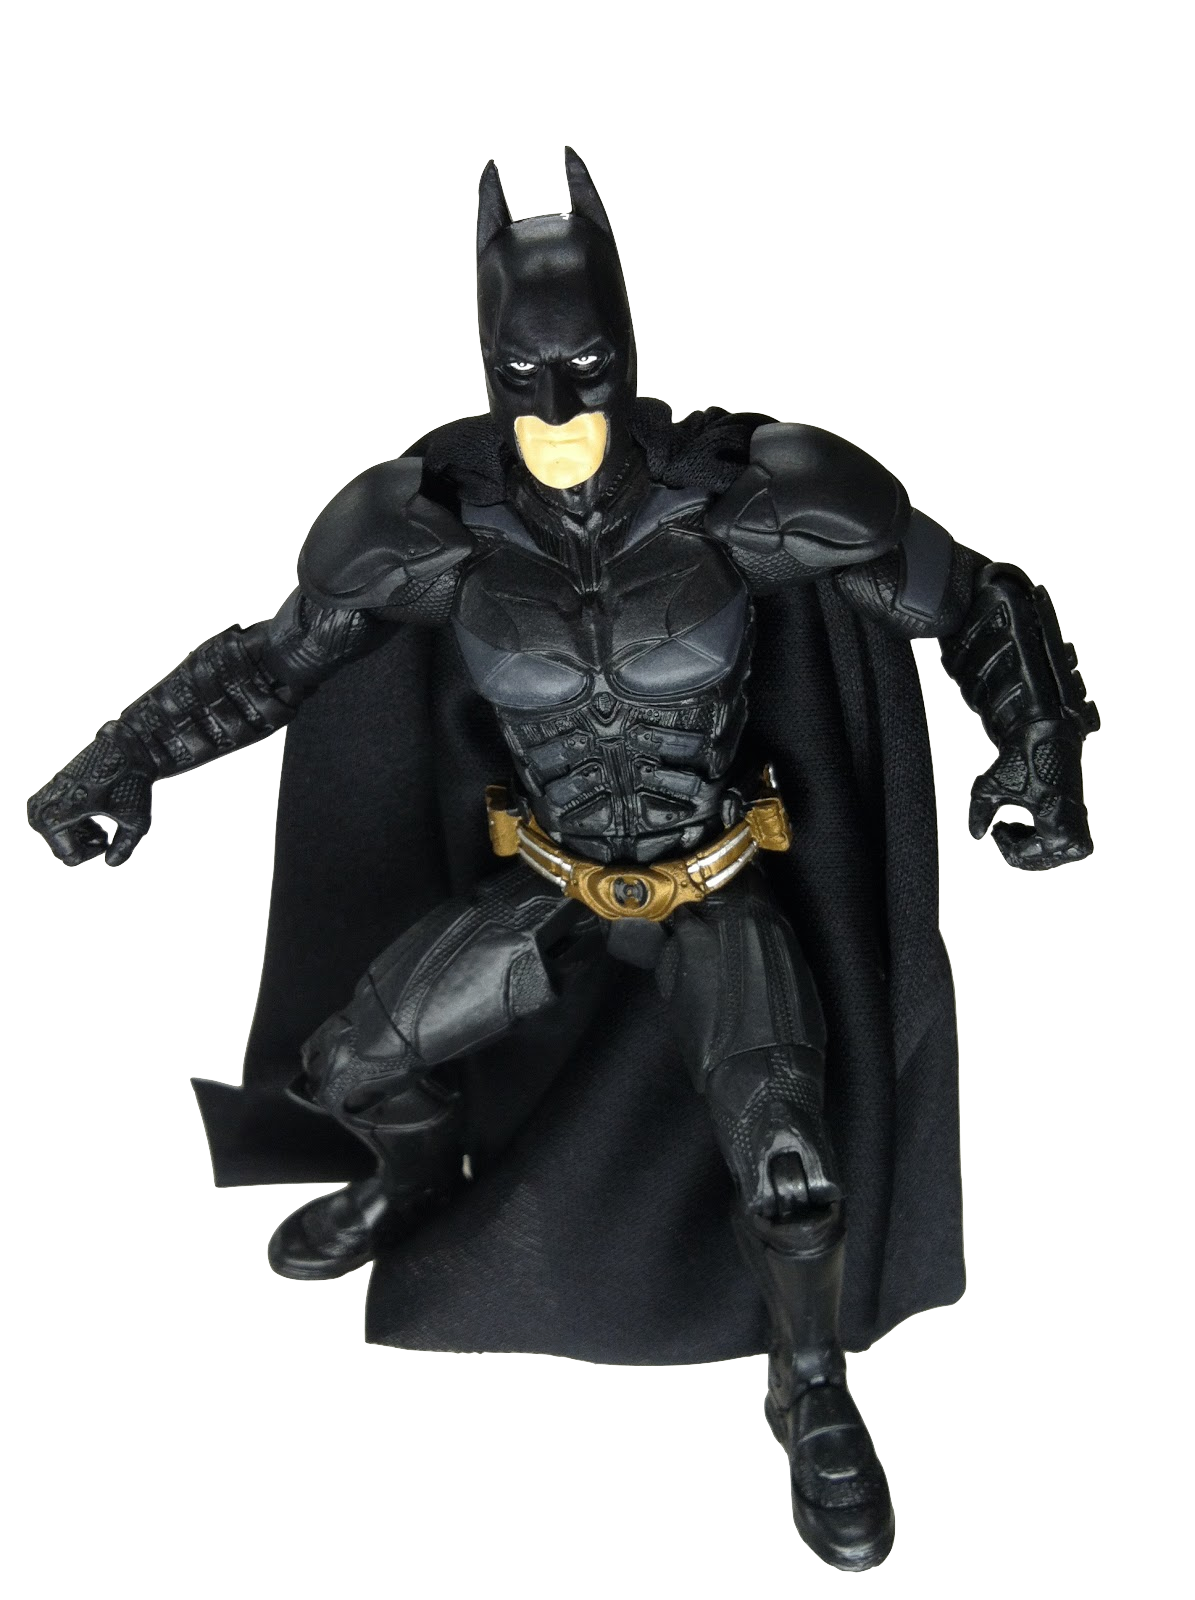 GeekSummit: Dark Knight Movie Masters | Custom Fabic Cape ...